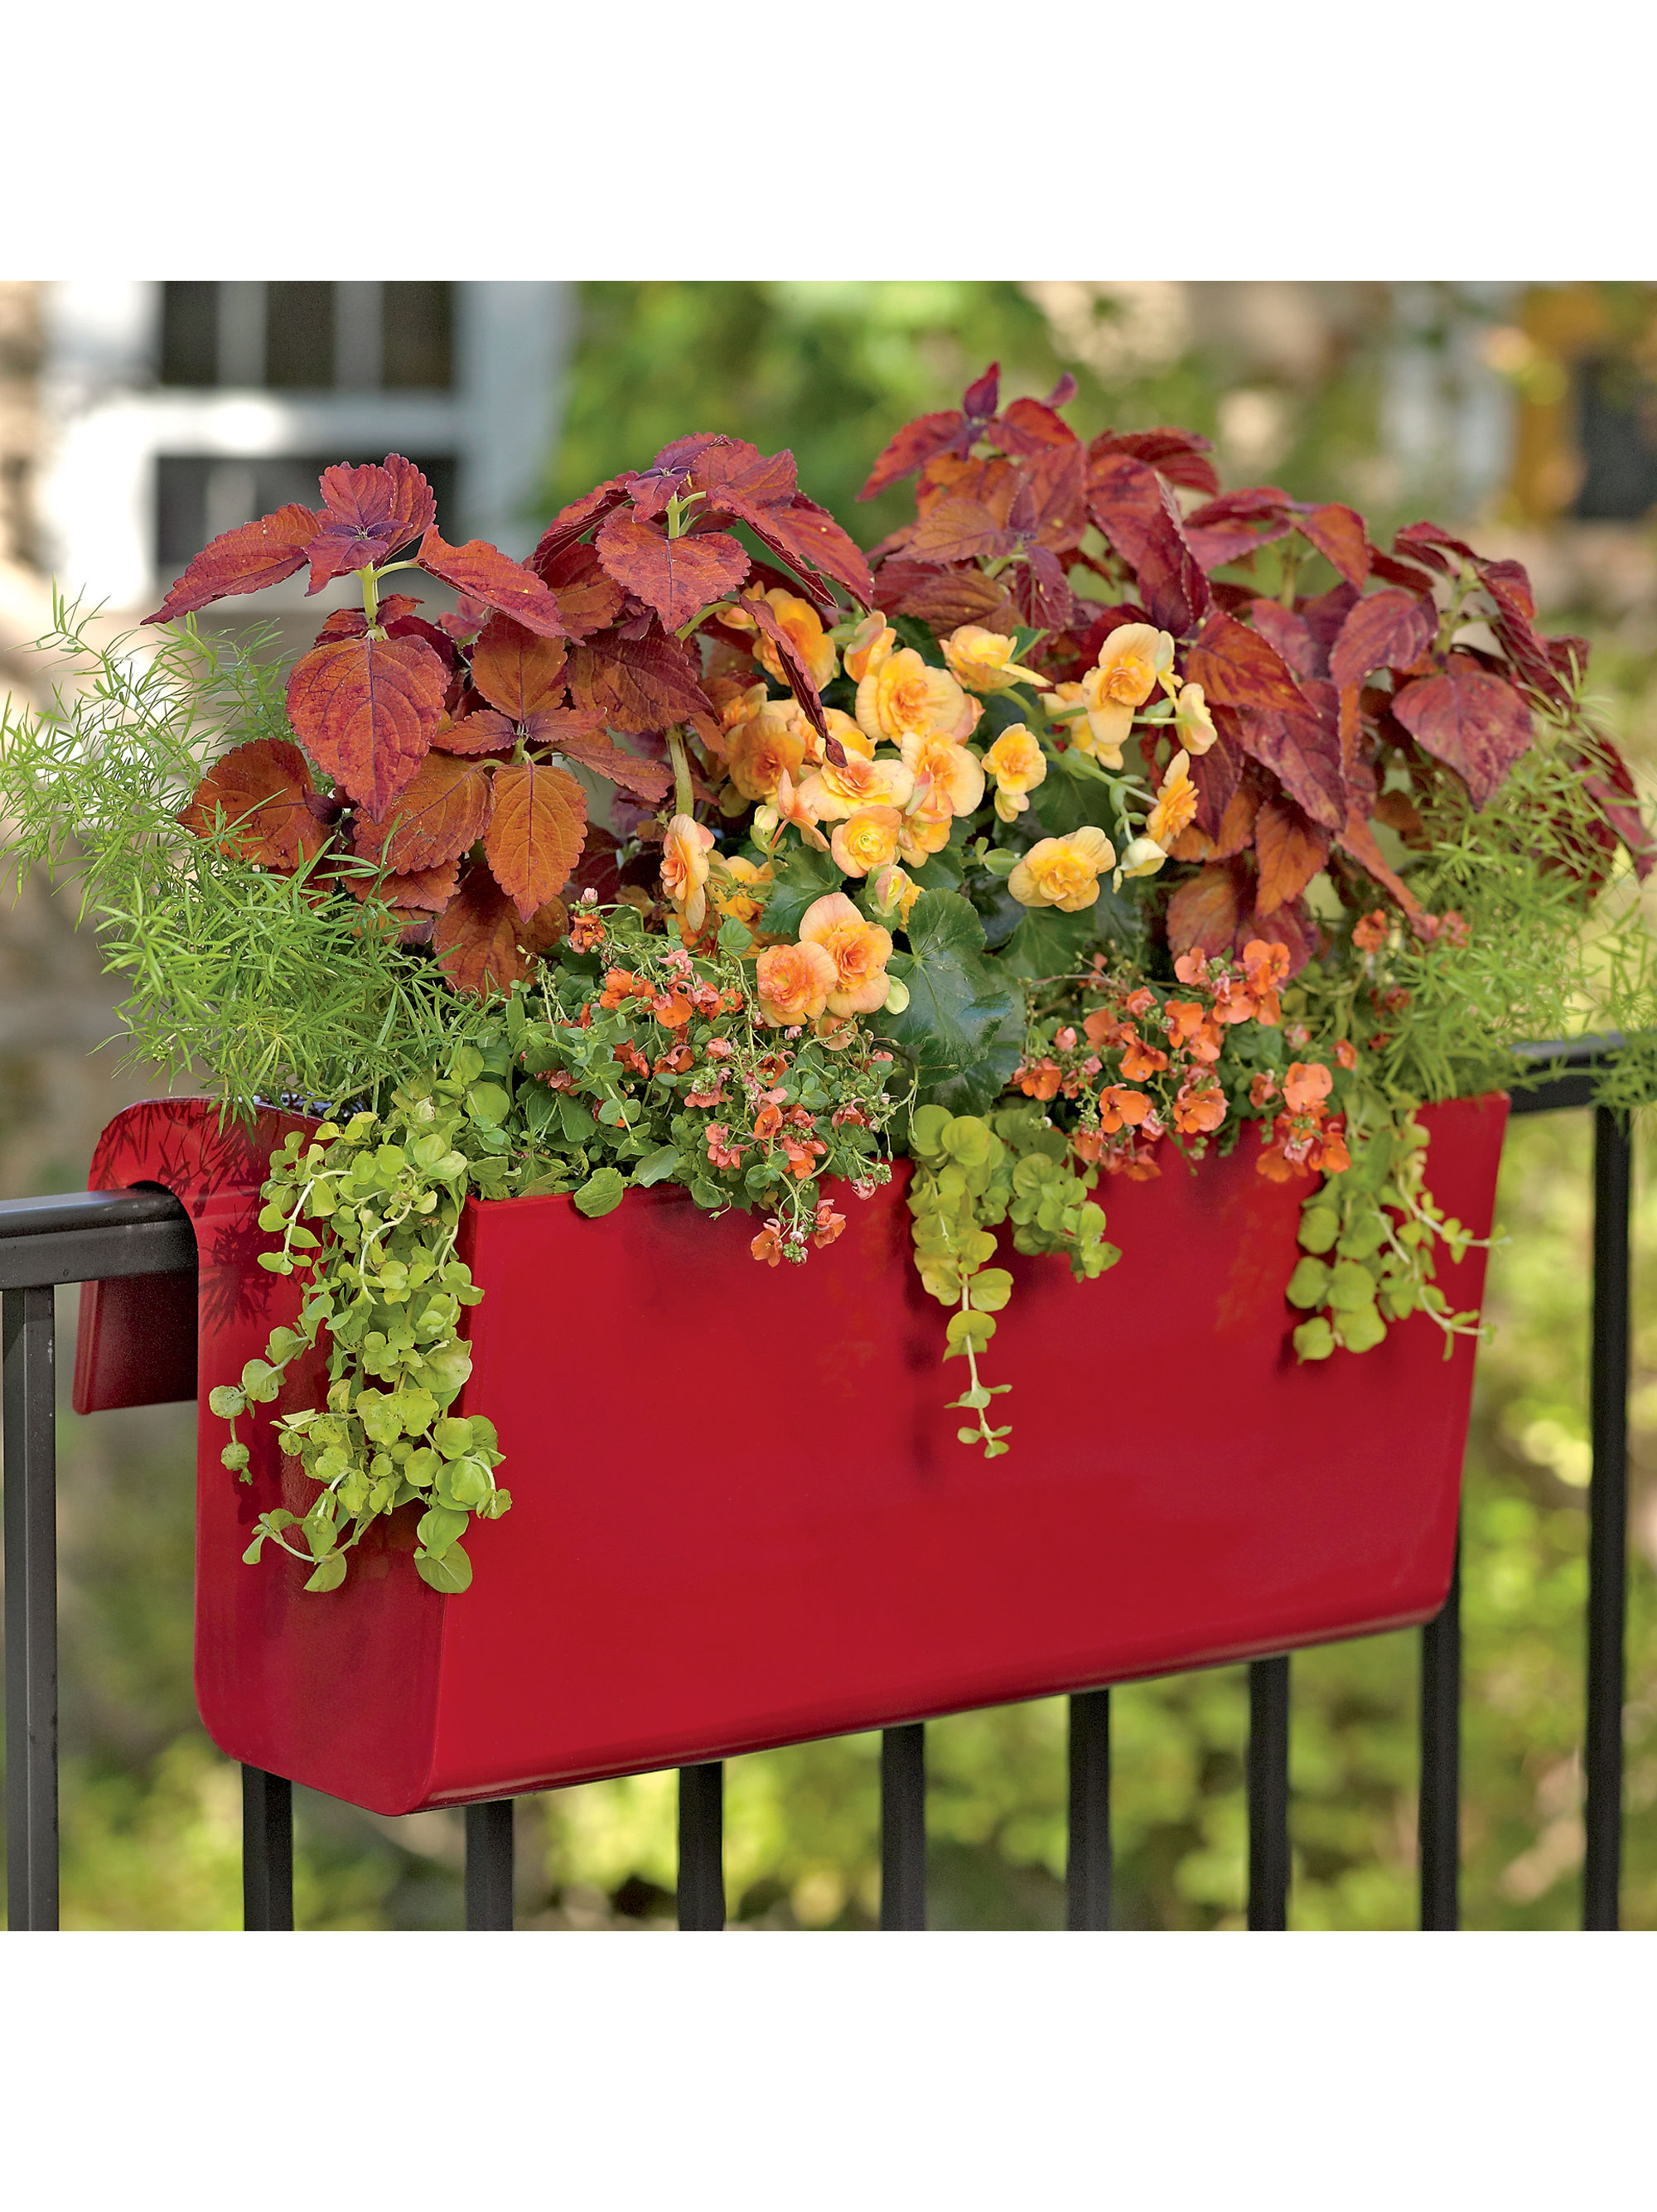 Planters for Balcony Railings | Flower Box Brackets for Vinyl Railing | Deck Rail Planters